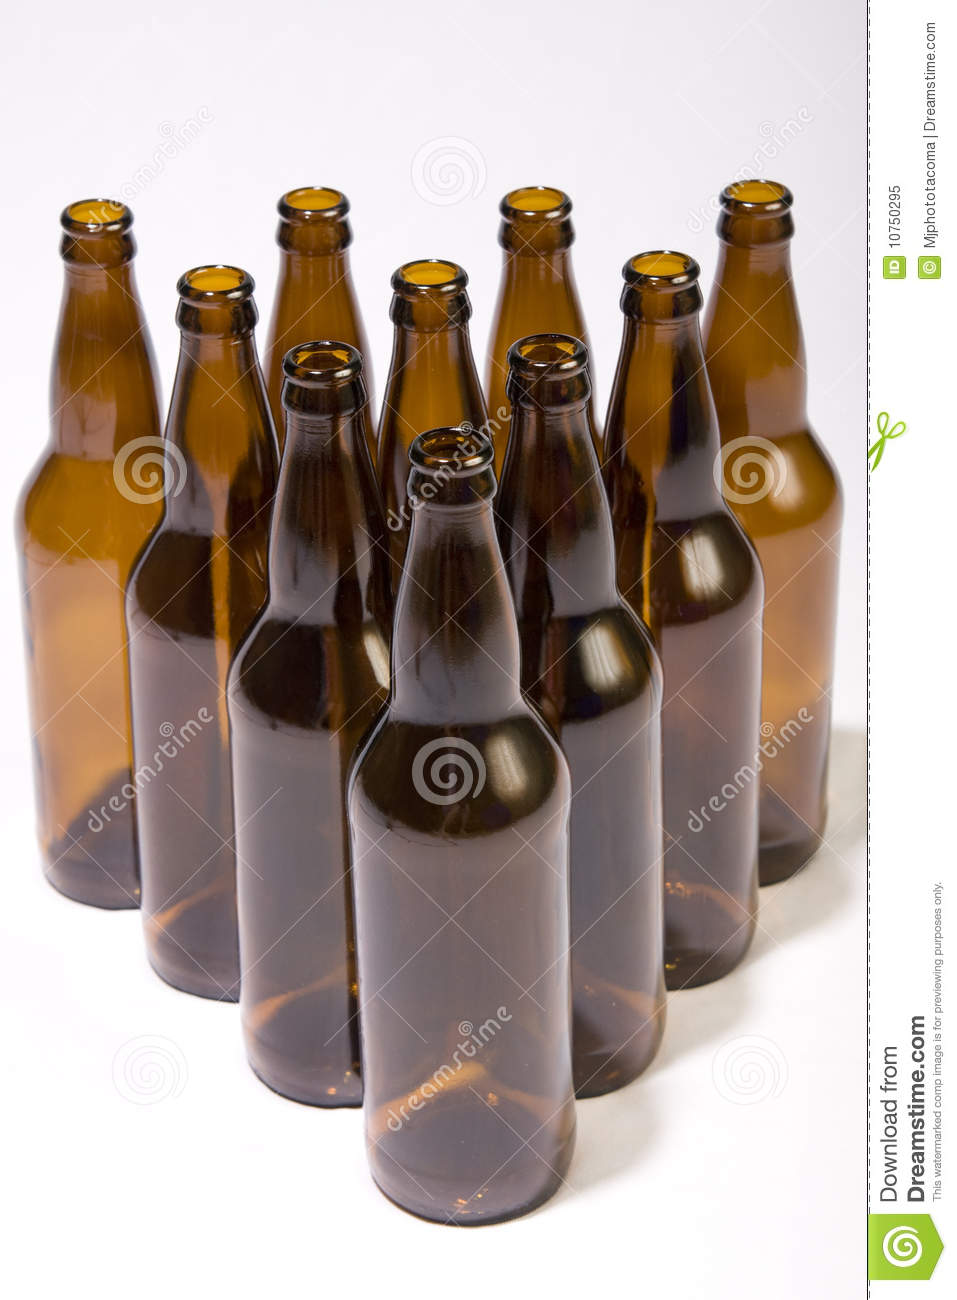 Beer Bottle Bowling Royalty Free Stock Photo Image 10750295